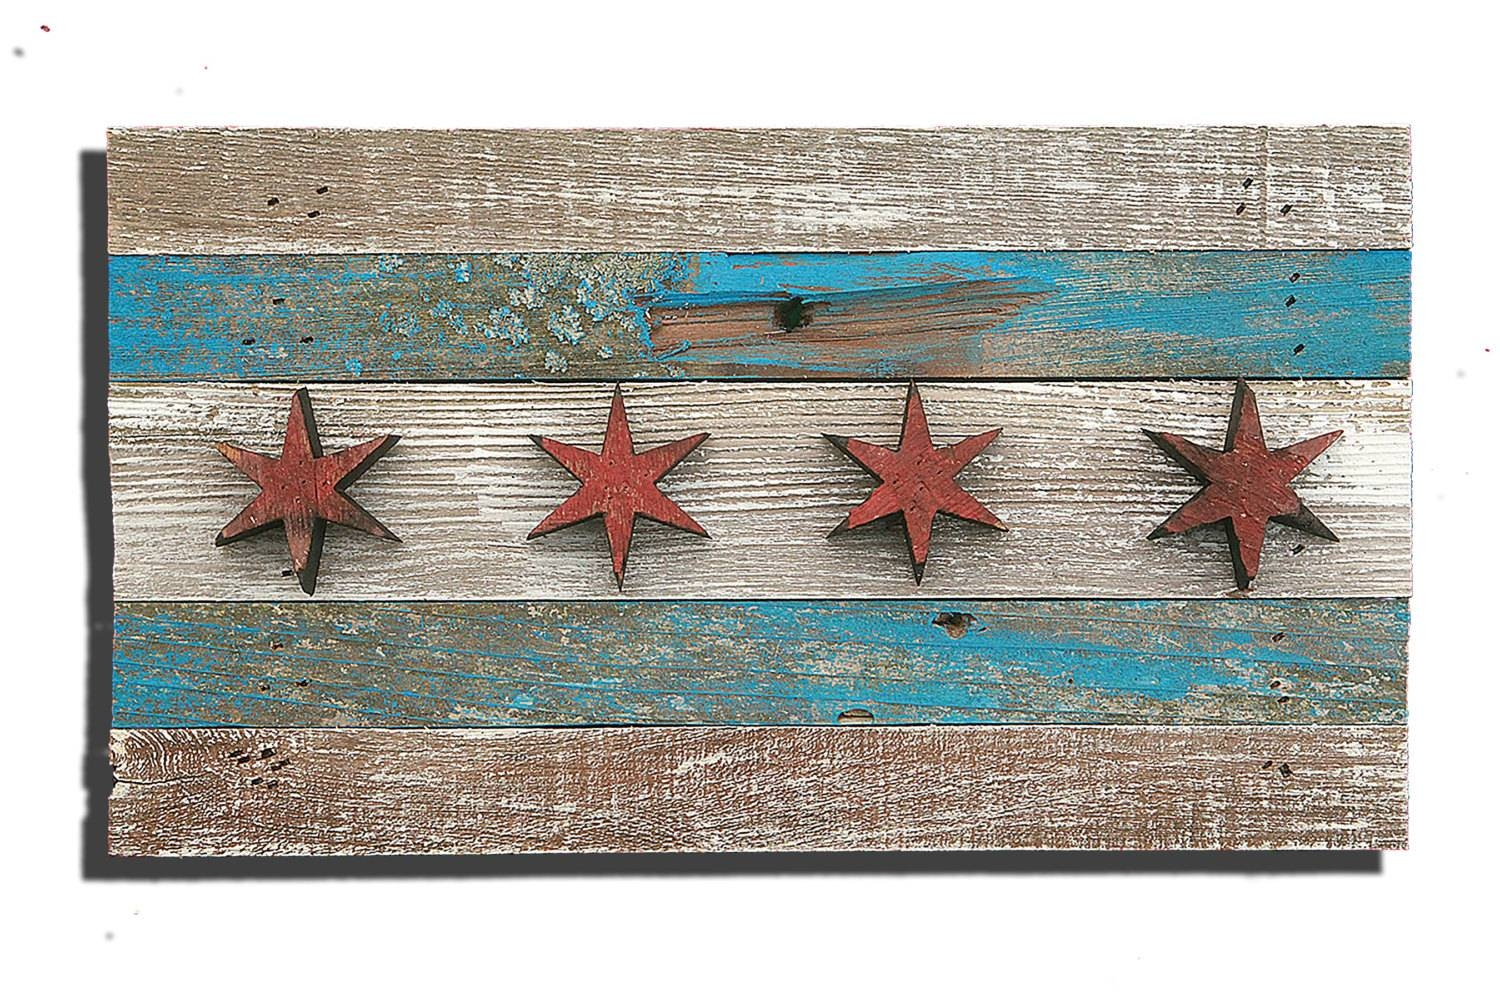 Handmade, Reclaimed Wooden Chicago Flag, Vintage, Art, Distressed Intended For Current Recycled Wall Art (View 15 of 30)